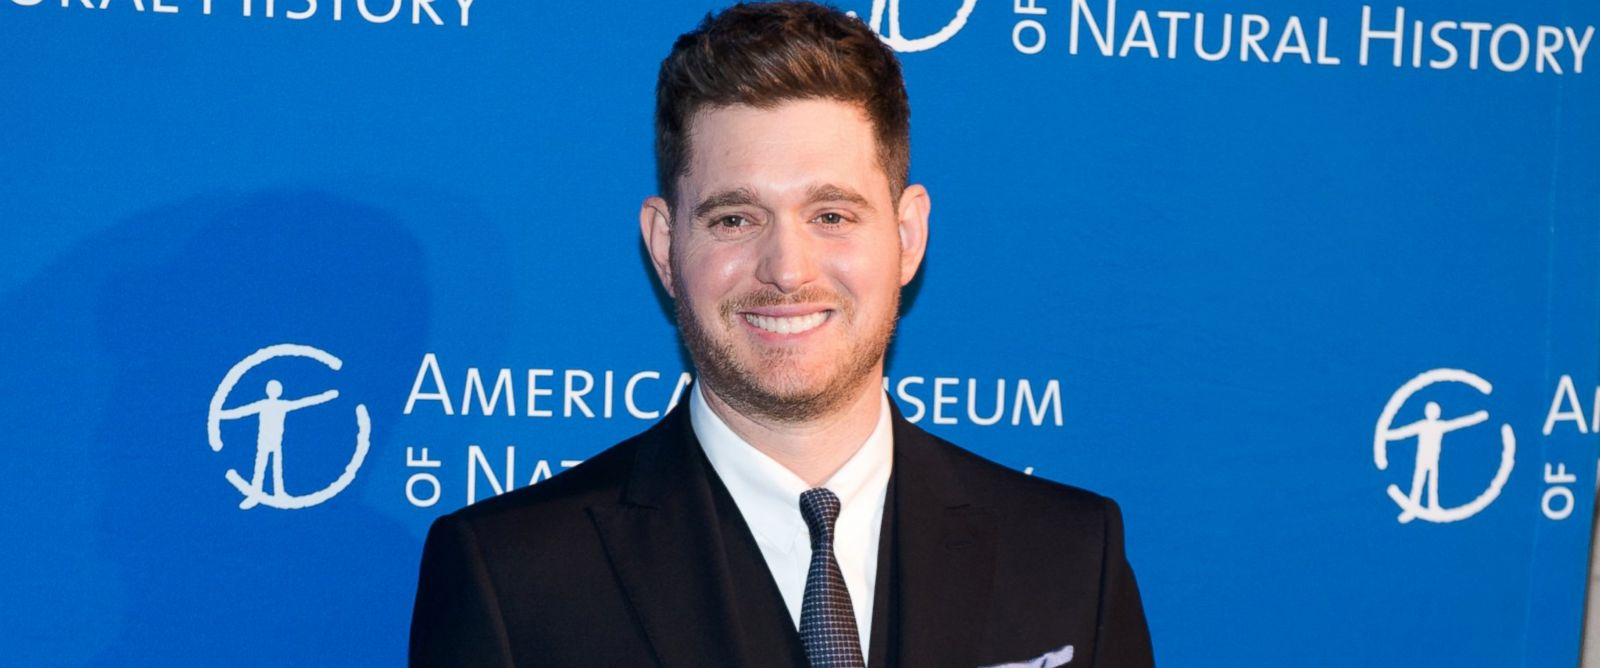 PHOTO: Michael Buble attends the 2015 American Museum of Natural History Museum Gala at American Museum of Natural History, Nov. 19, 2015, in New York City.